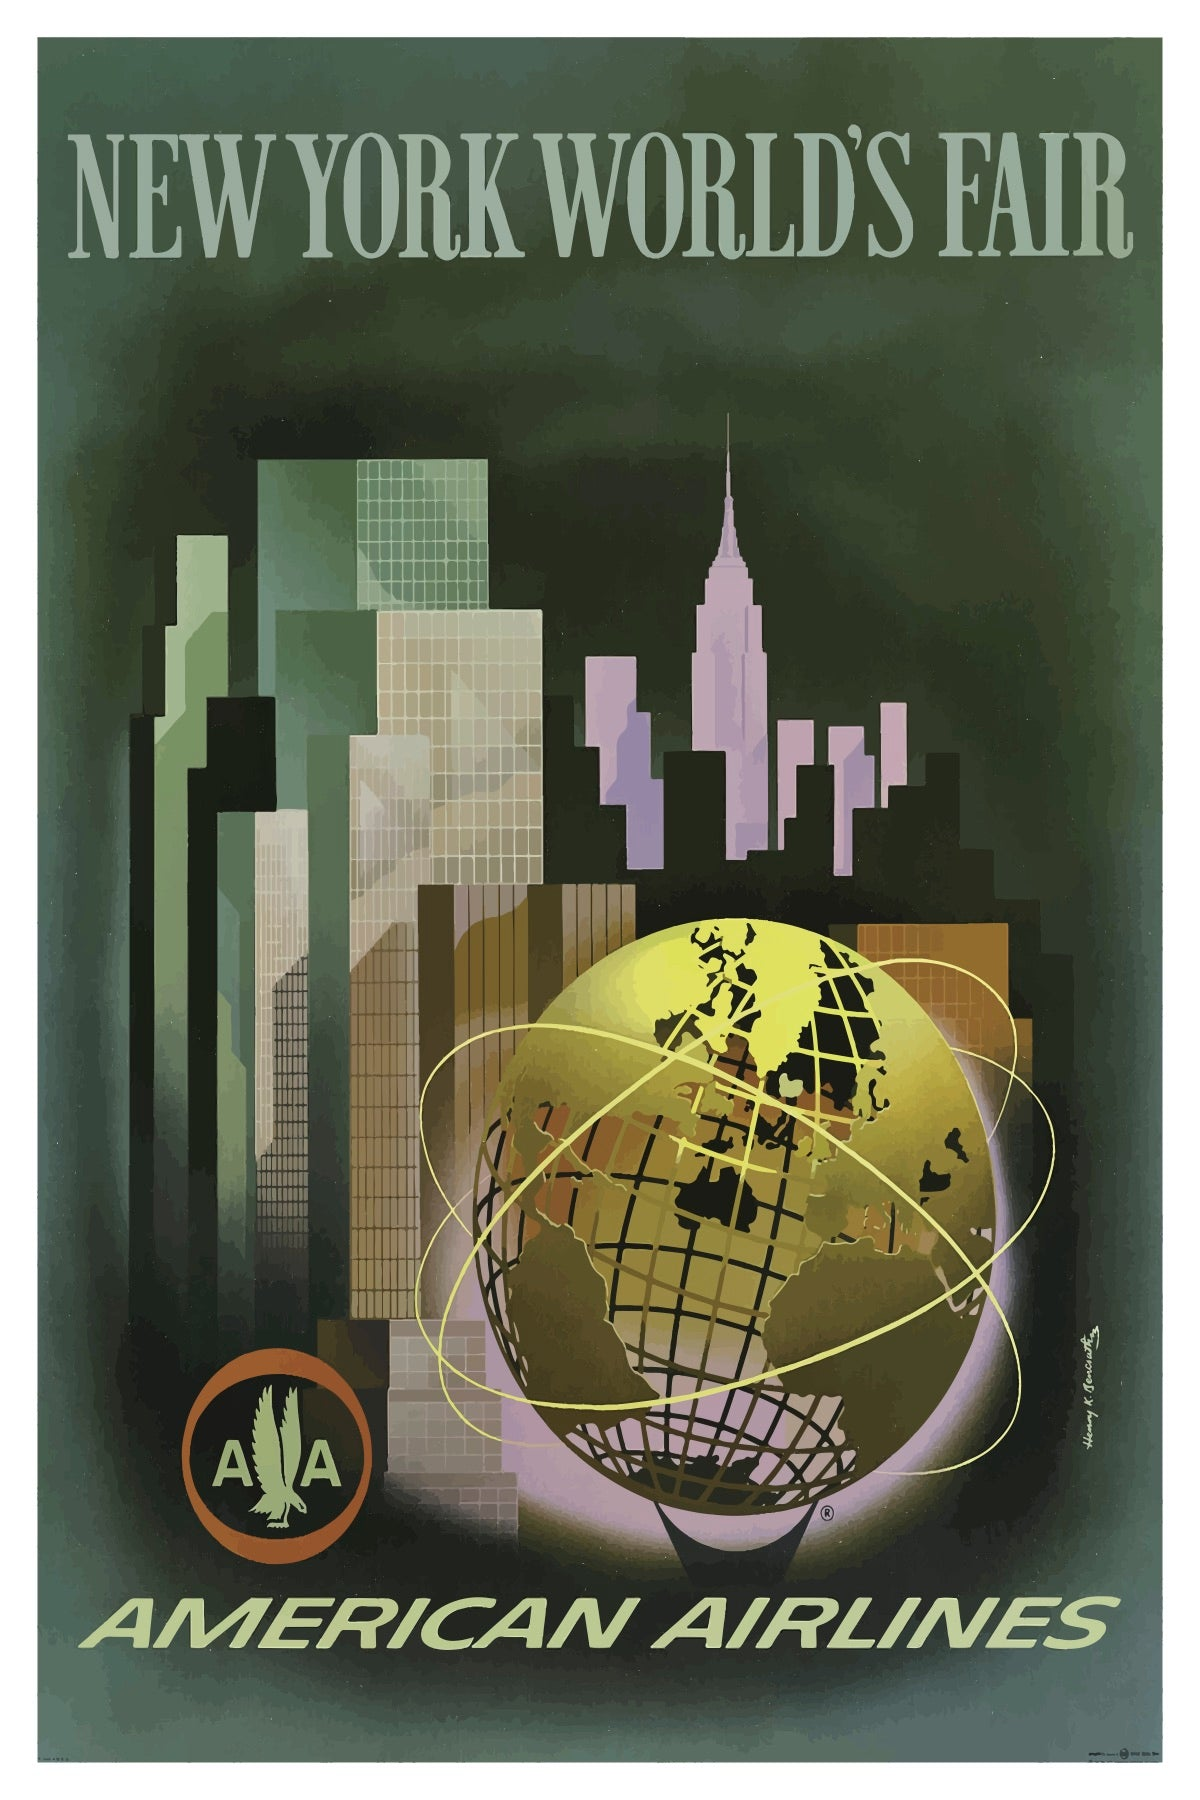 NEW YORK WORLD'S FAIR AMERICAN AIRLINES POSTAL CARD